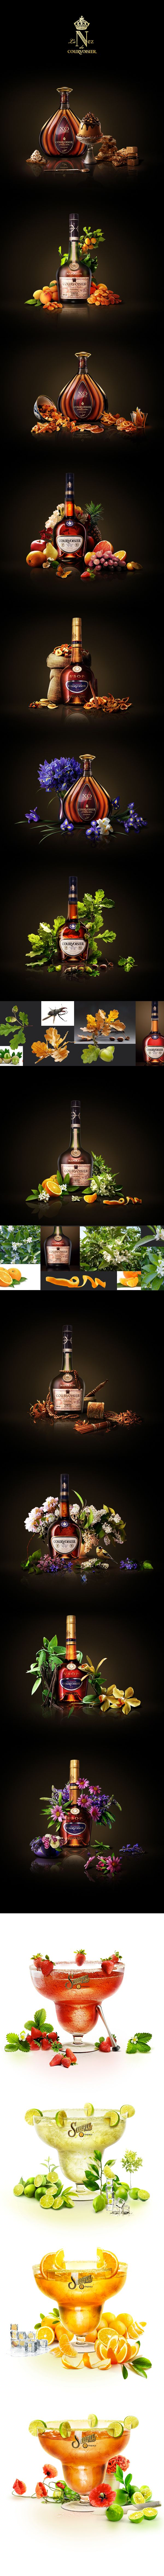 Collages for Sauza and Courvoisier on Behance